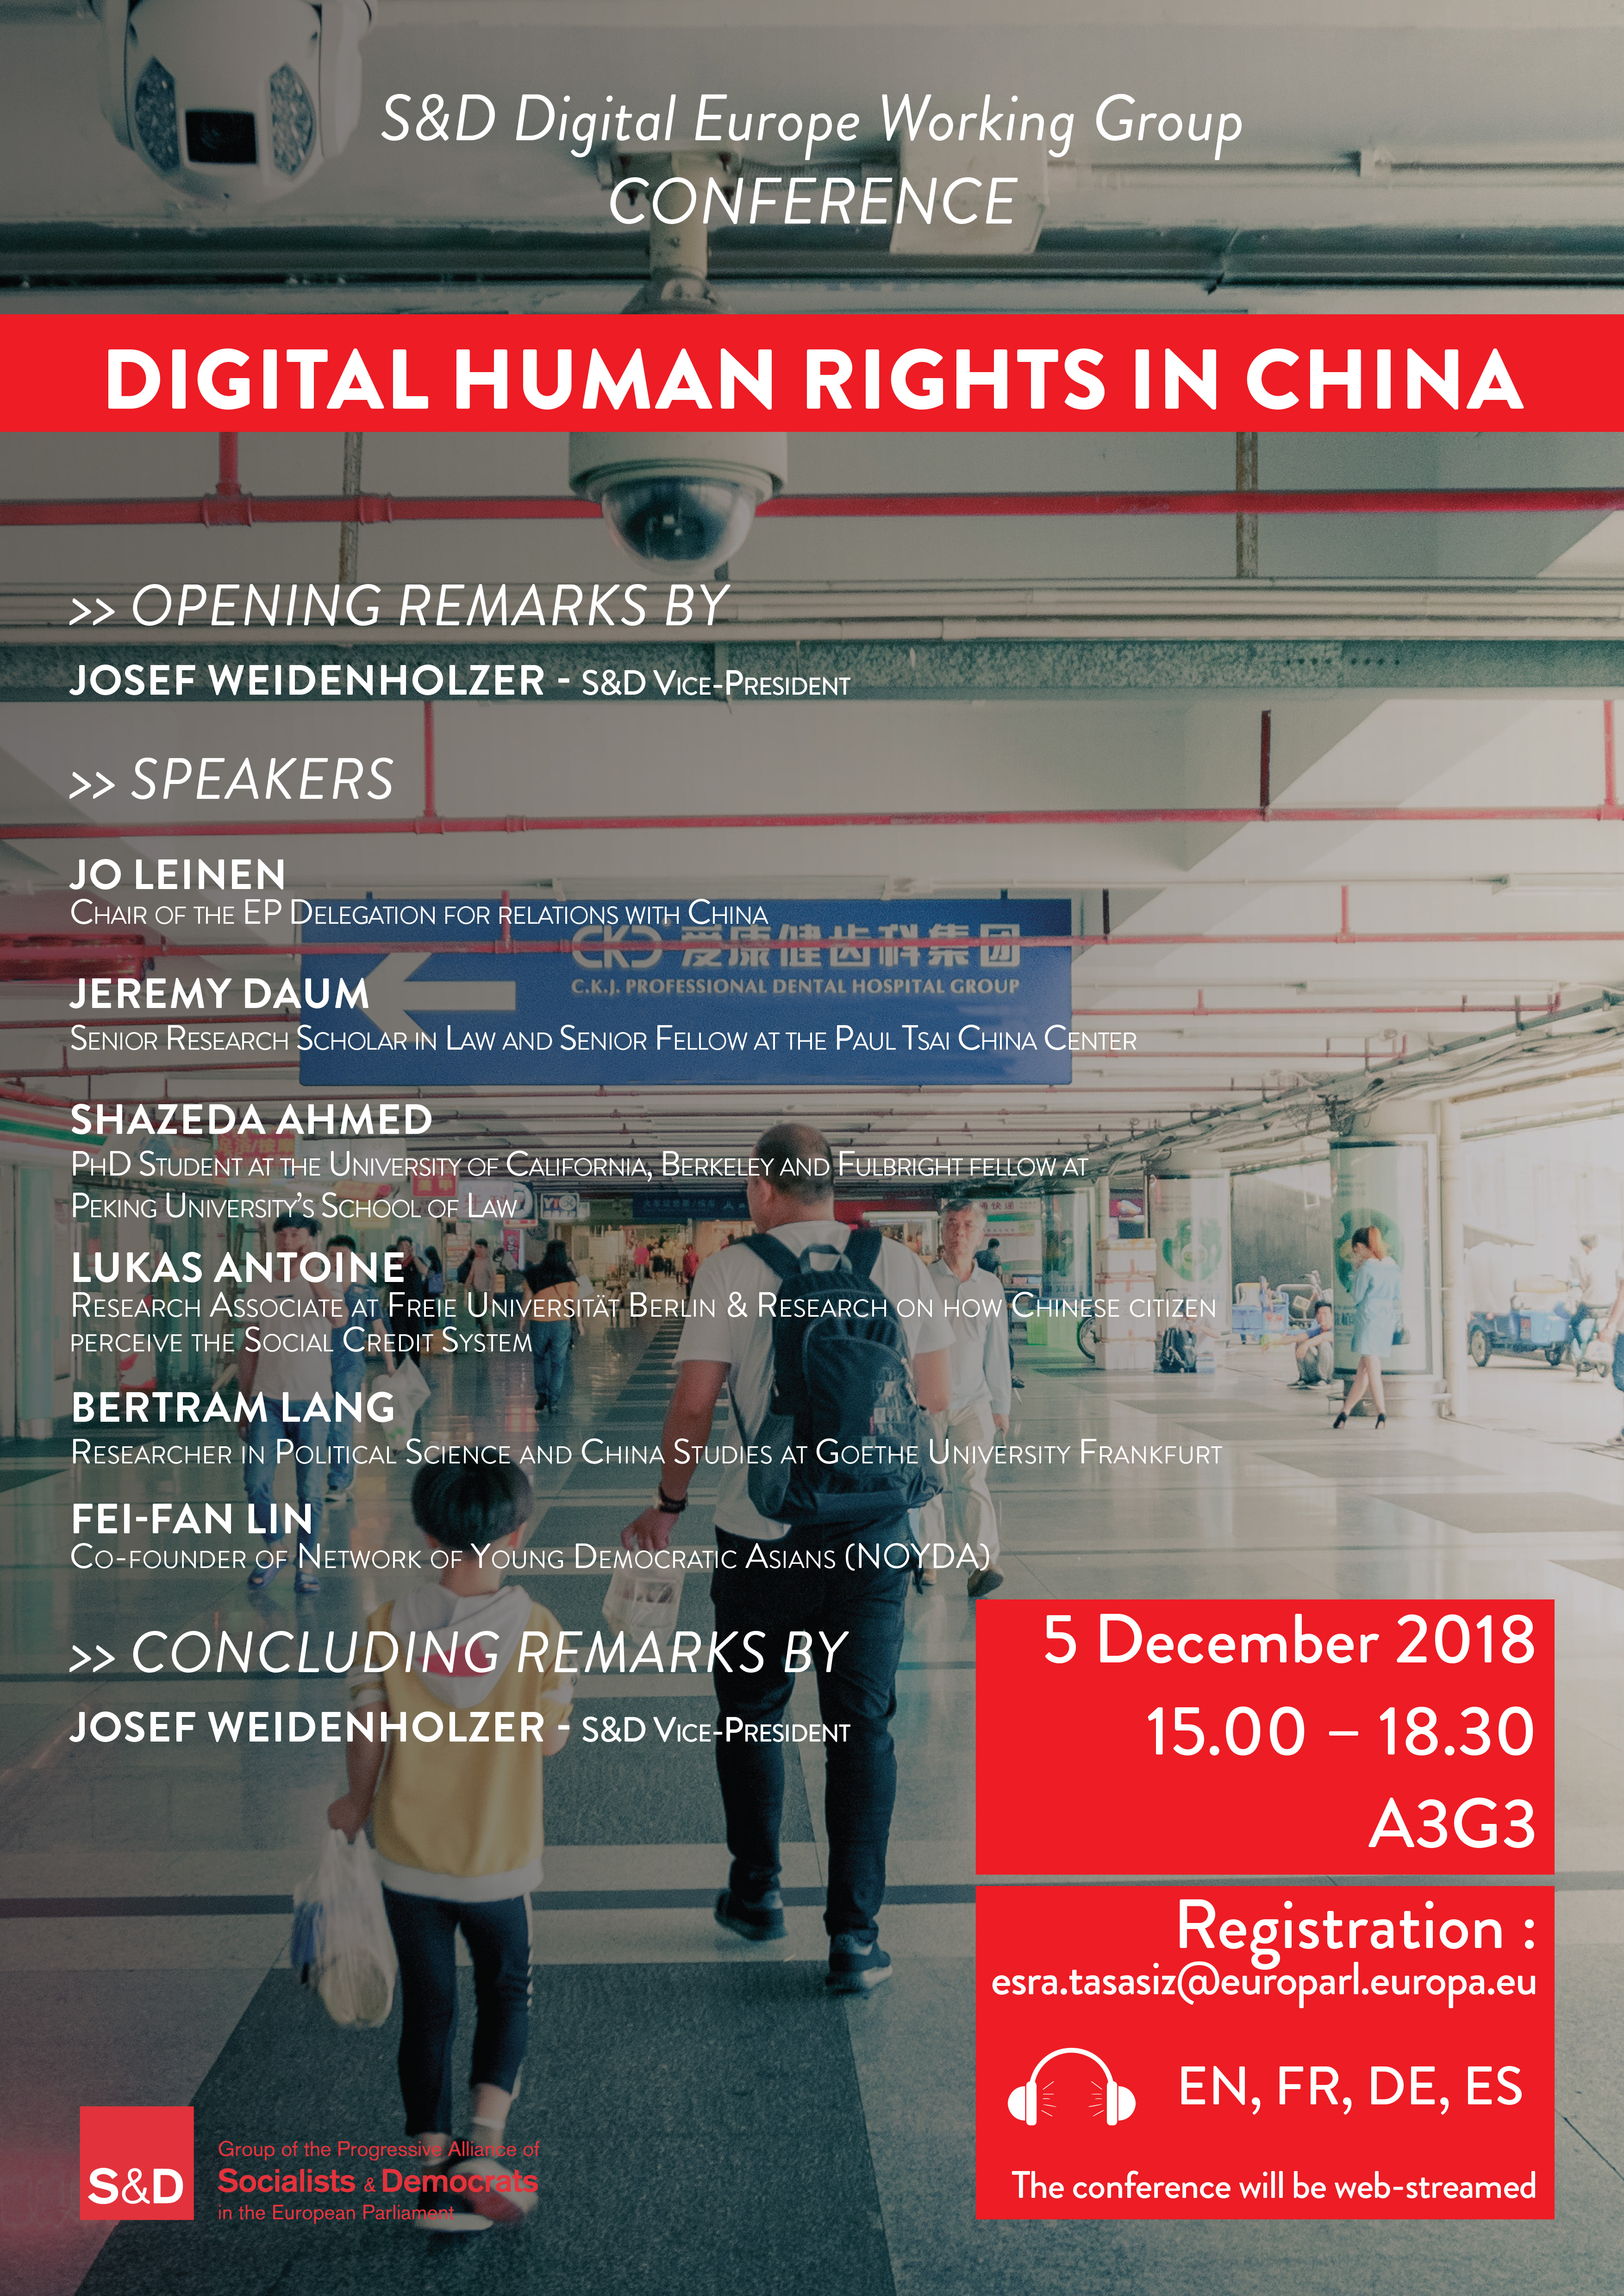 S&D Digital Europe Working Group Conference - Digital Human Rights in China.